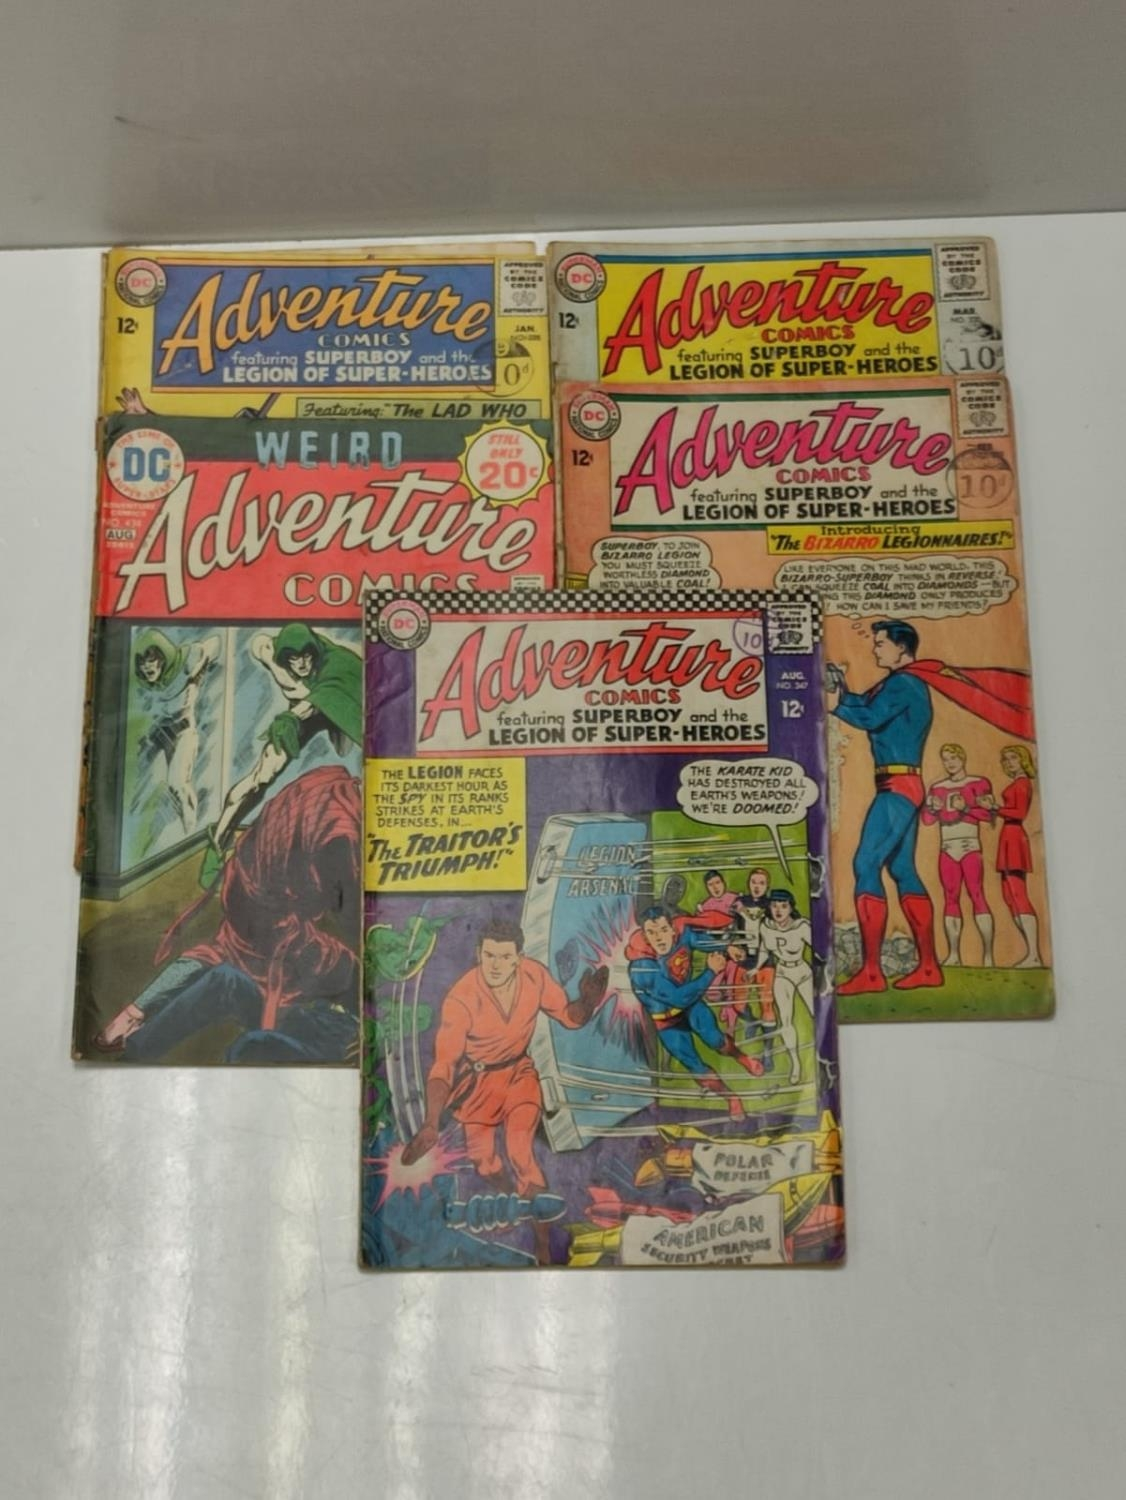 5 editions of DC Adventure Comics featuring Super-boy. - Image 14 of 19